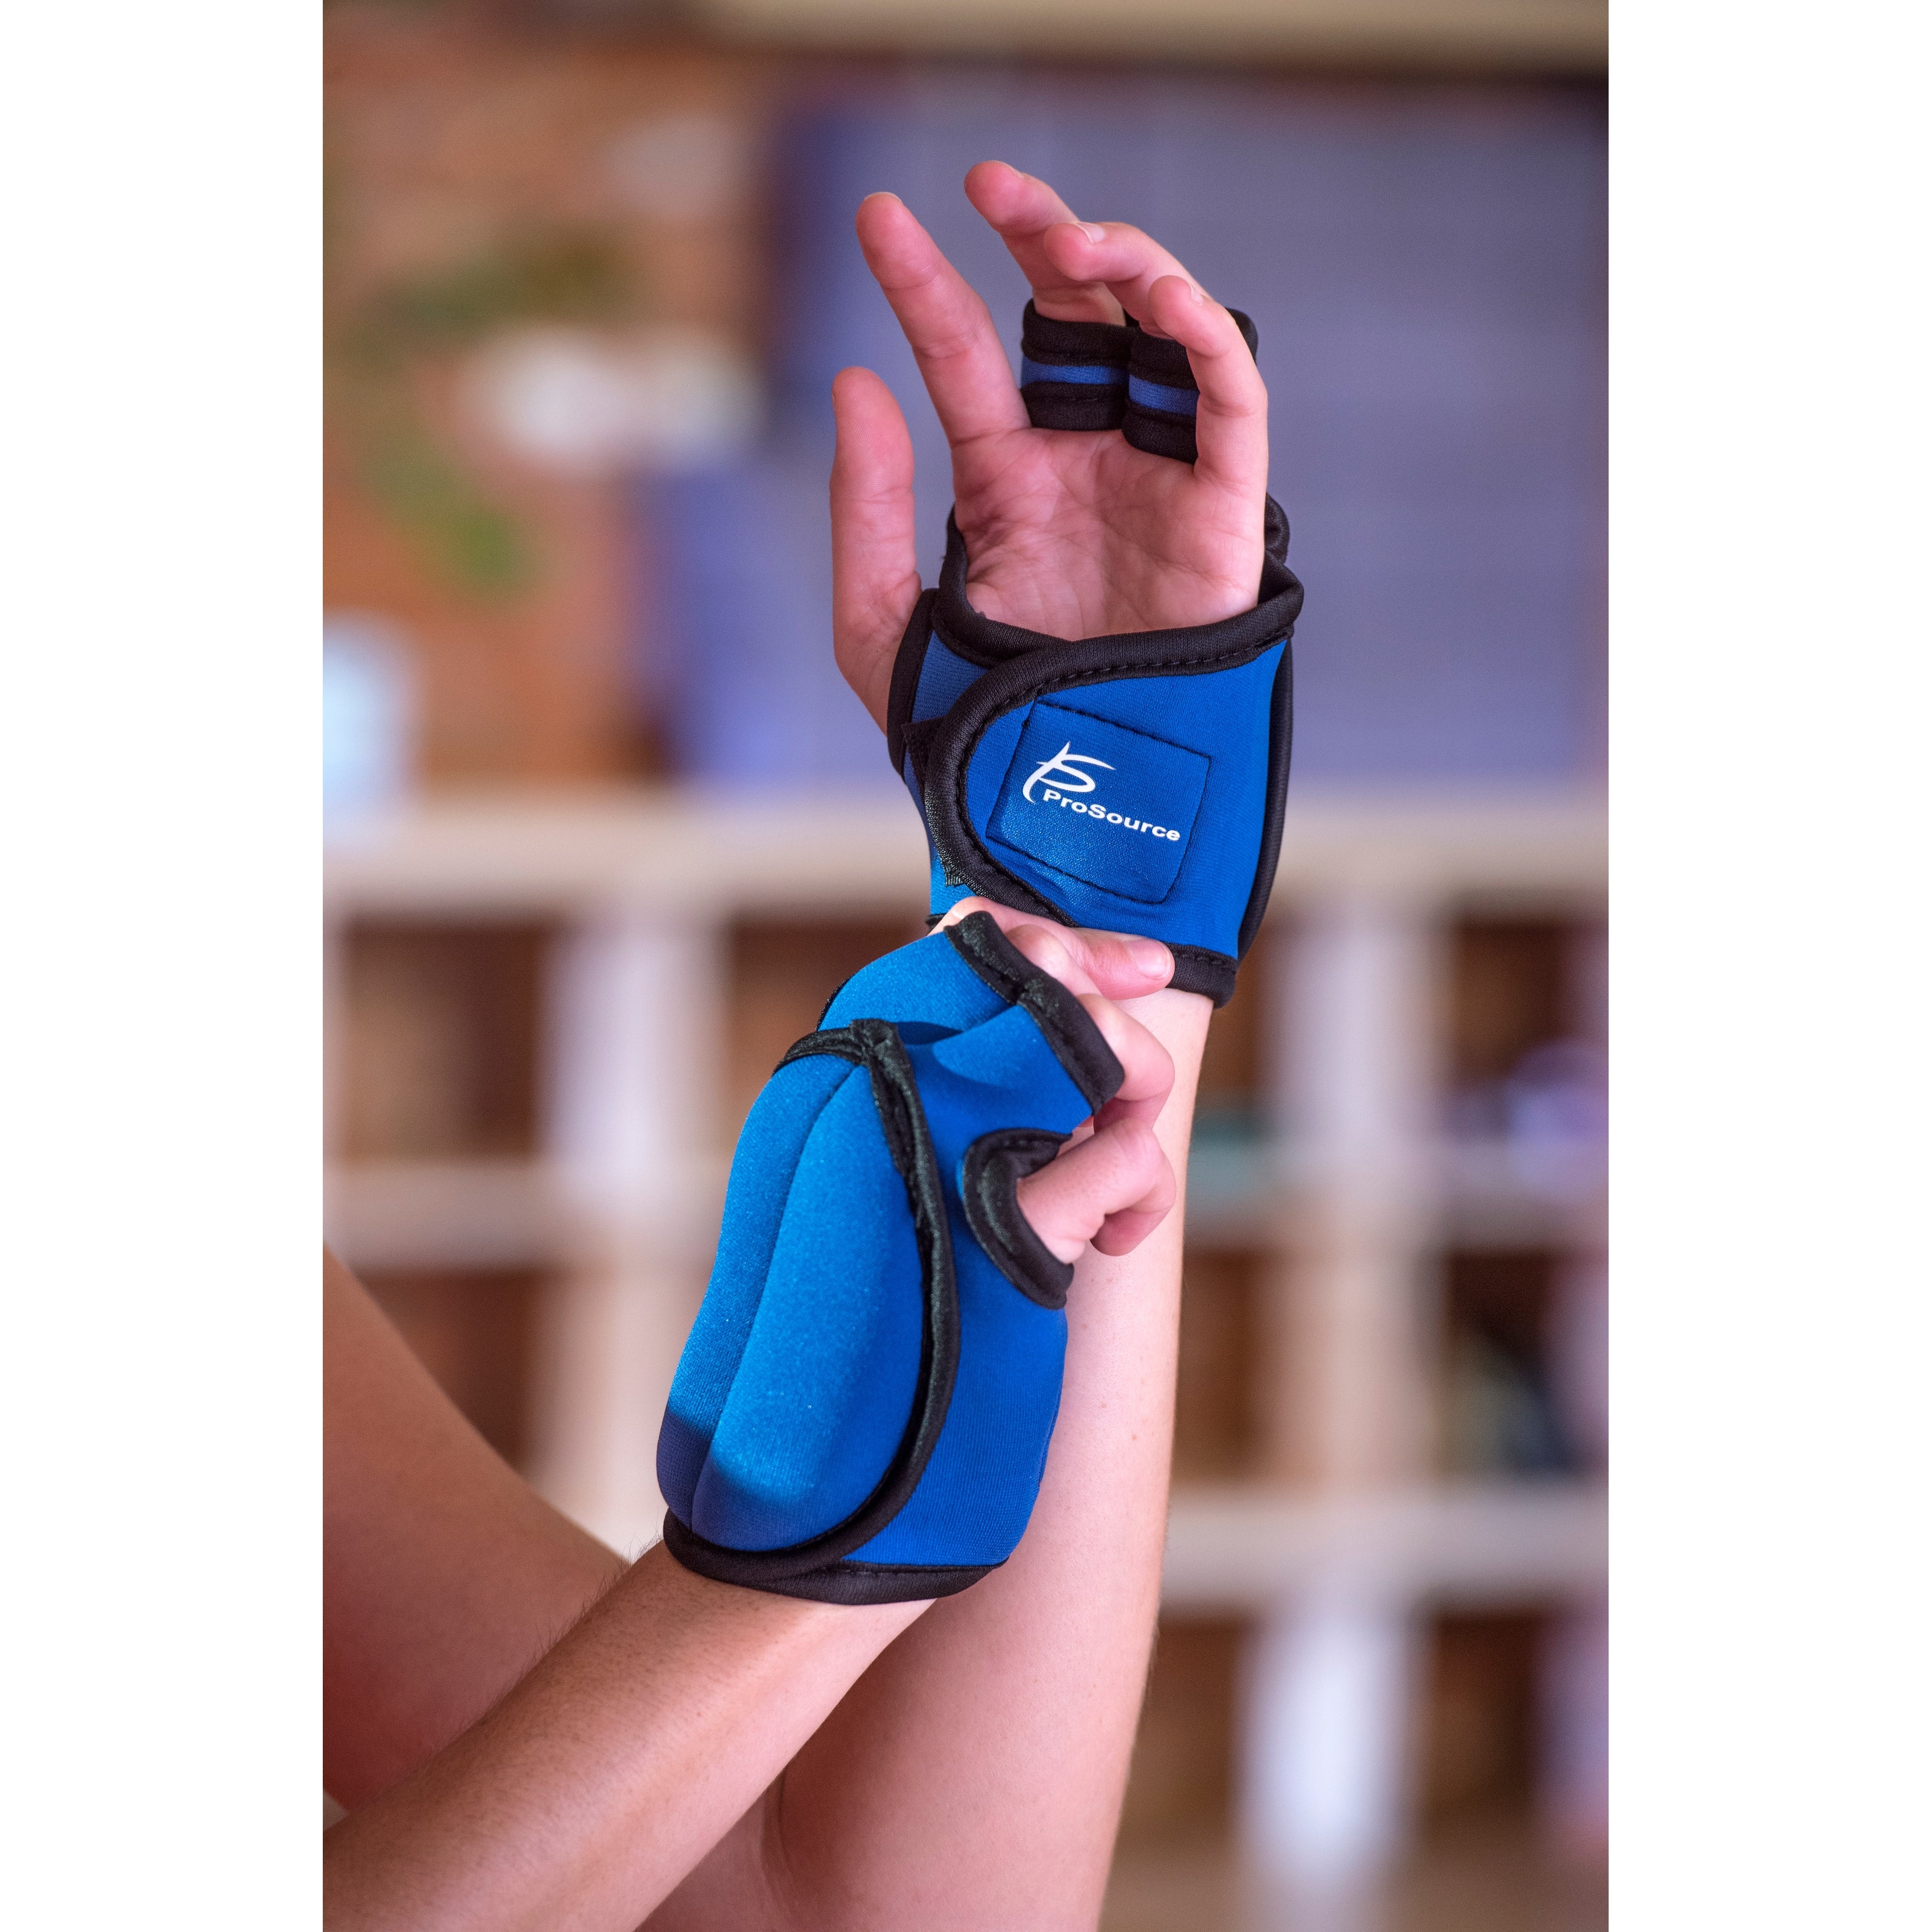 ProSource Pair of Neoprene Weighted Gloves 2lbs for Sculpting and Aerobics Black